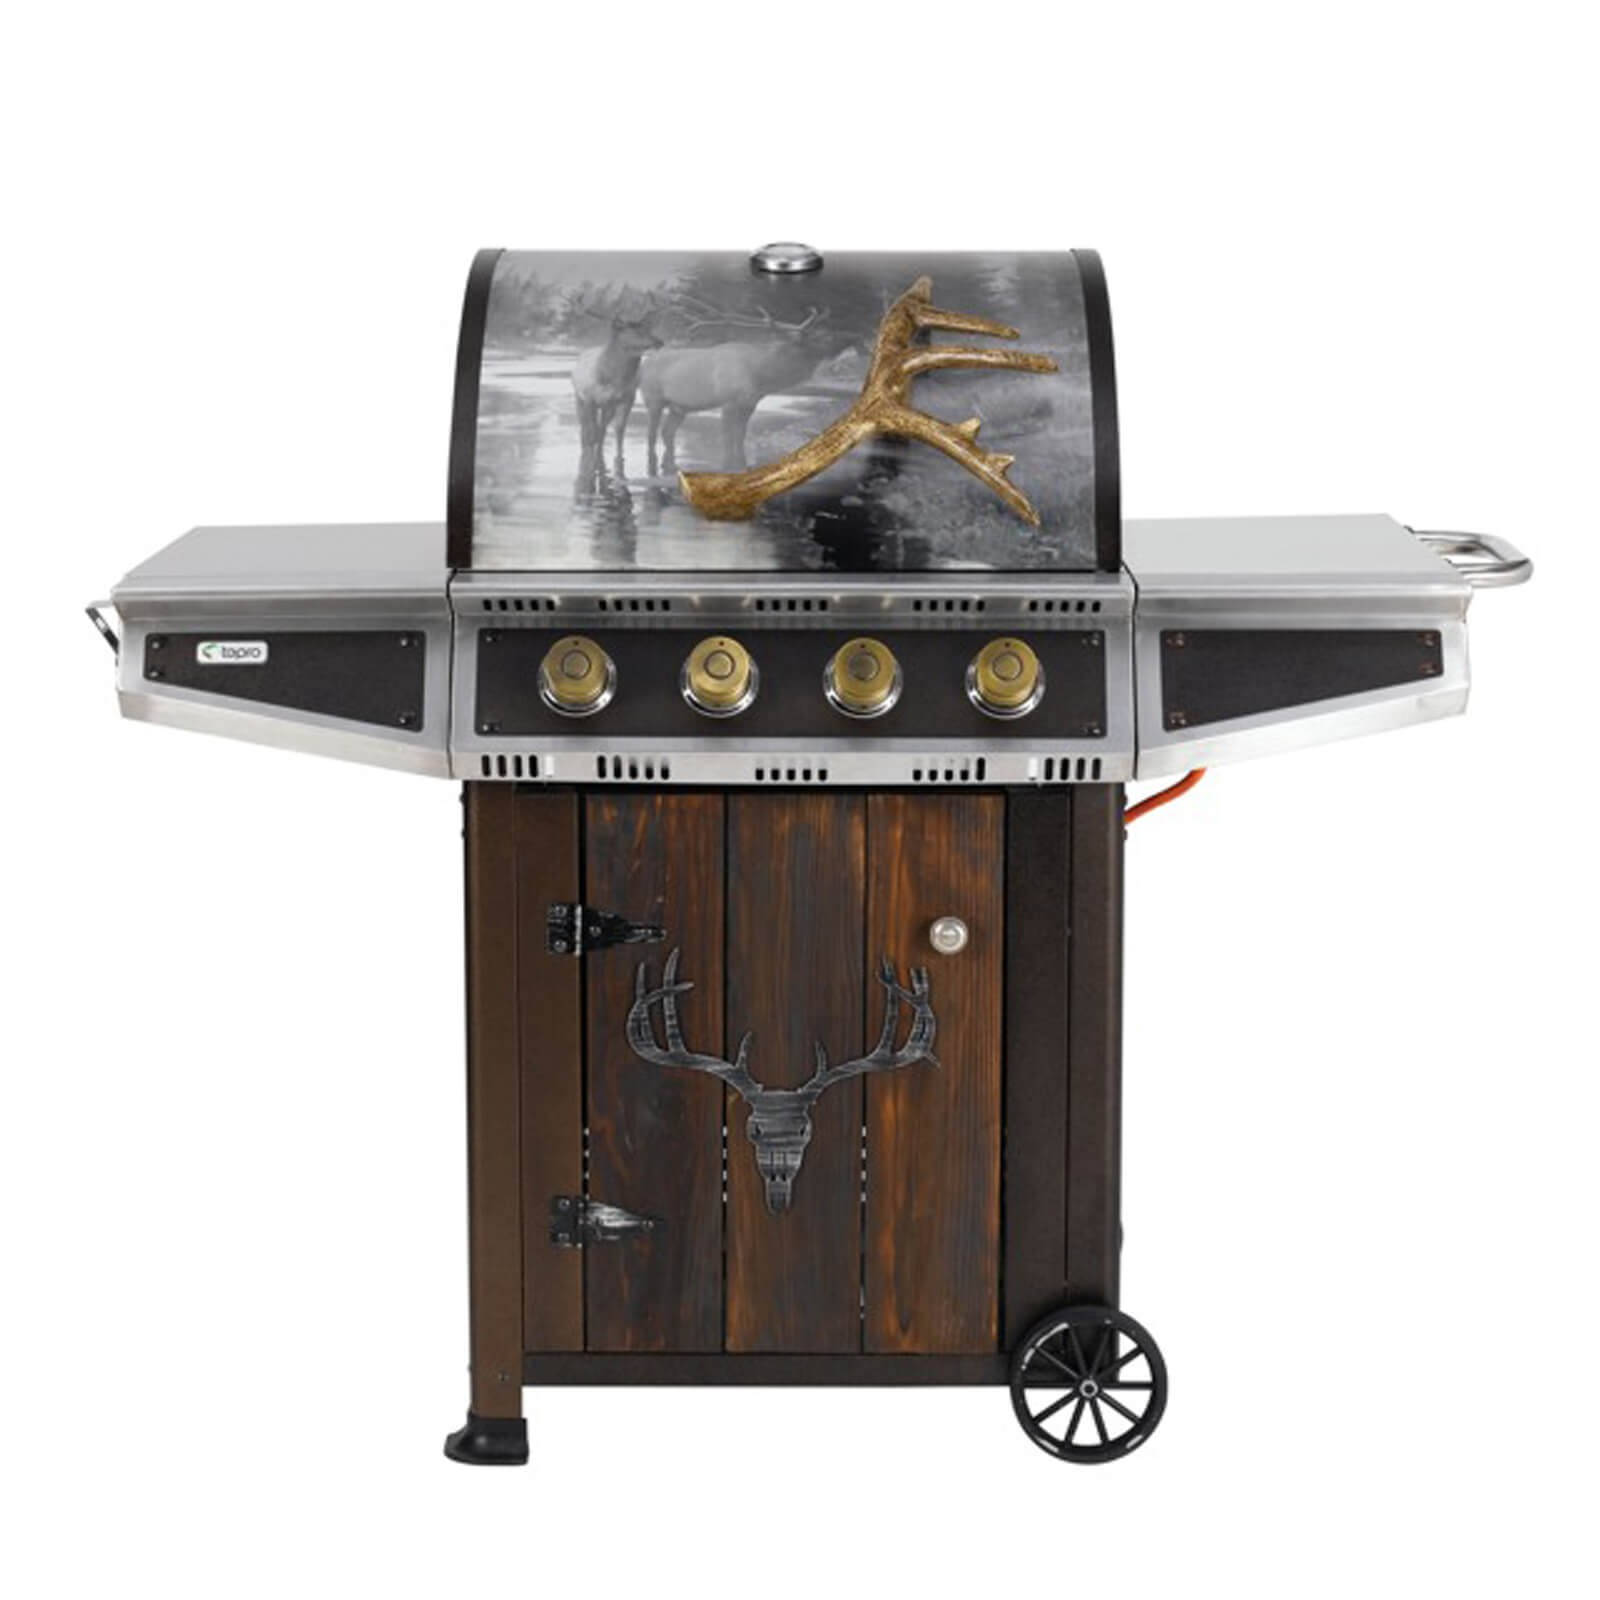 tepro gasgrill grillwagen bbq garten grill hunter valley natur motiv echtholzt r ebay. Black Bedroom Furniture Sets. Home Design Ideas